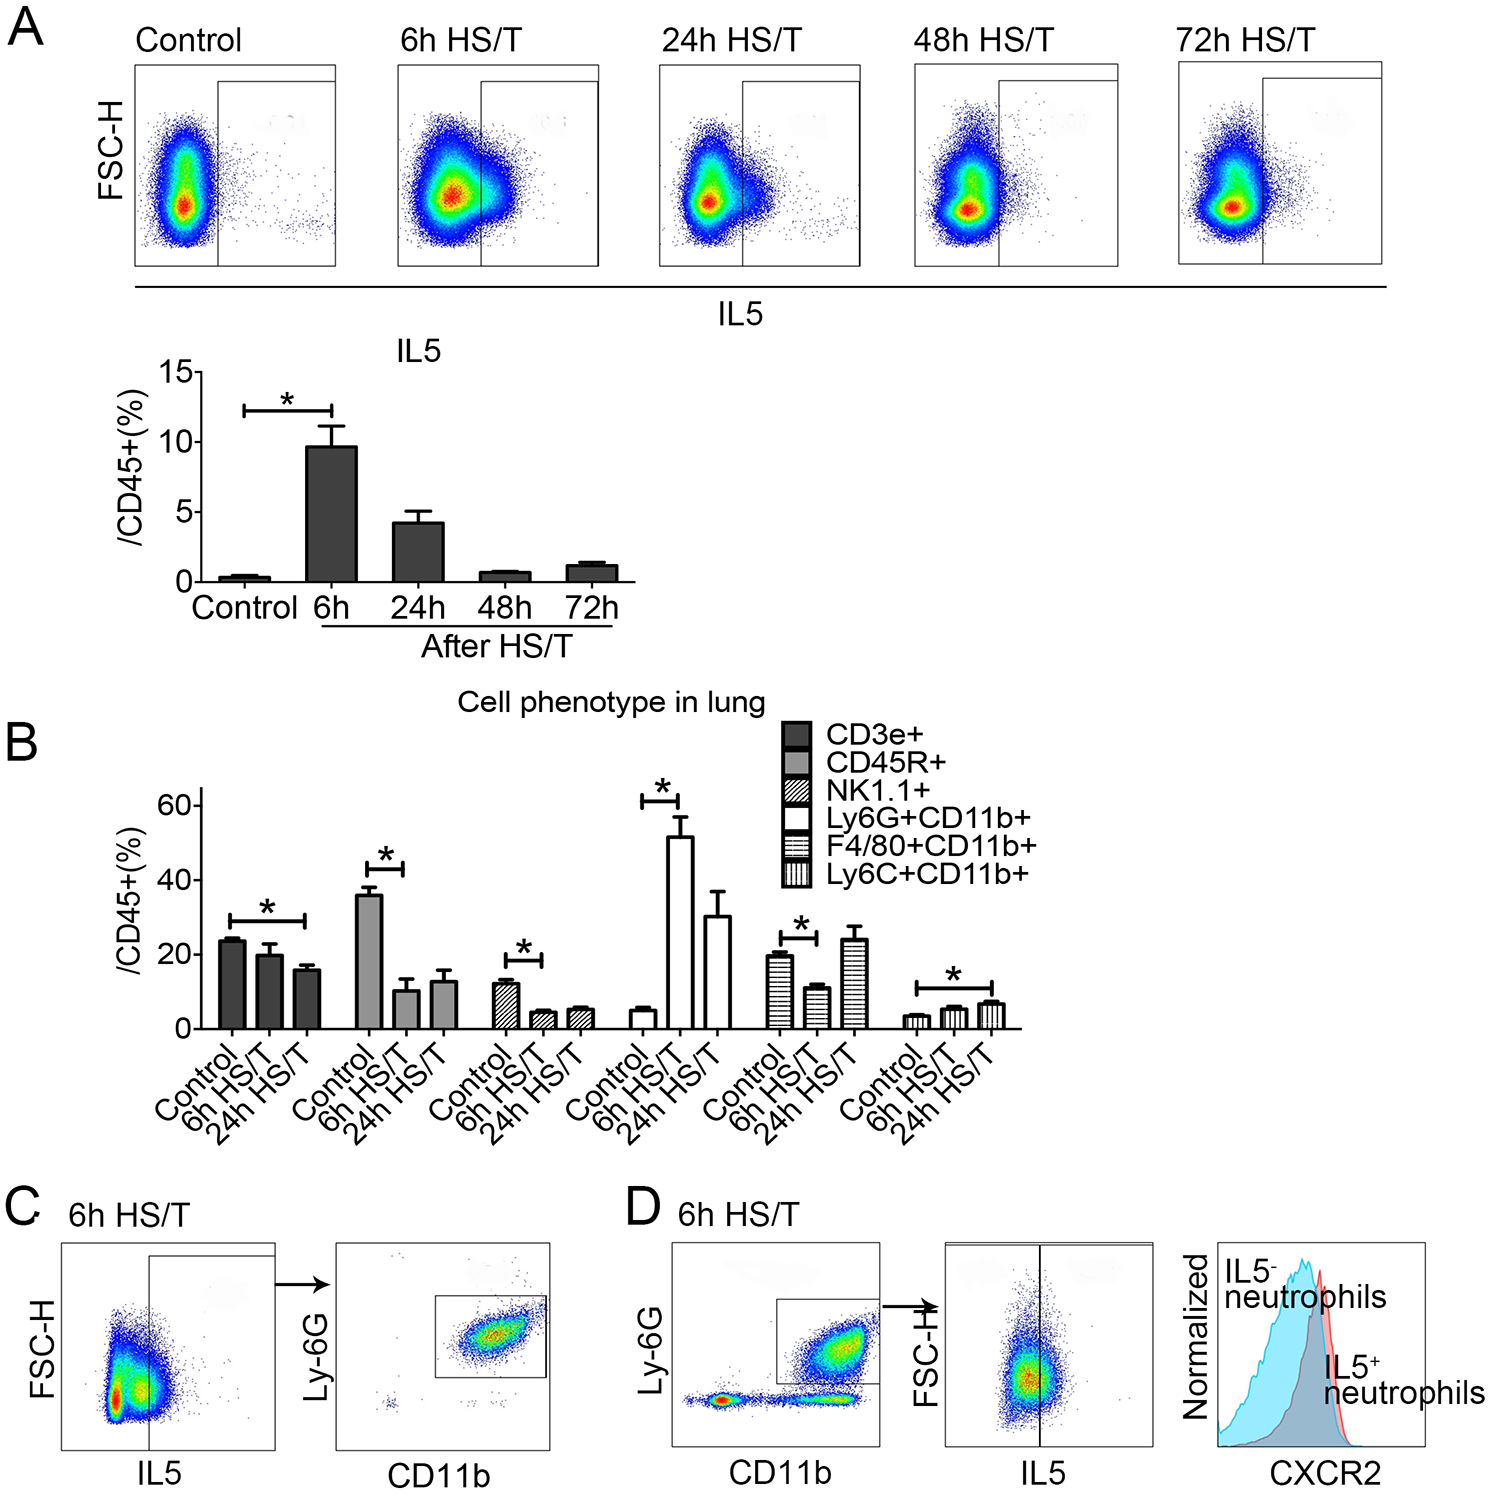 Change of cell phenotype in the lungs of mice after resuscitated hemorrhagic shock and tissue trauma (HS/T) and the cell resource of type 2 cytokine interleukin (IL) 5.